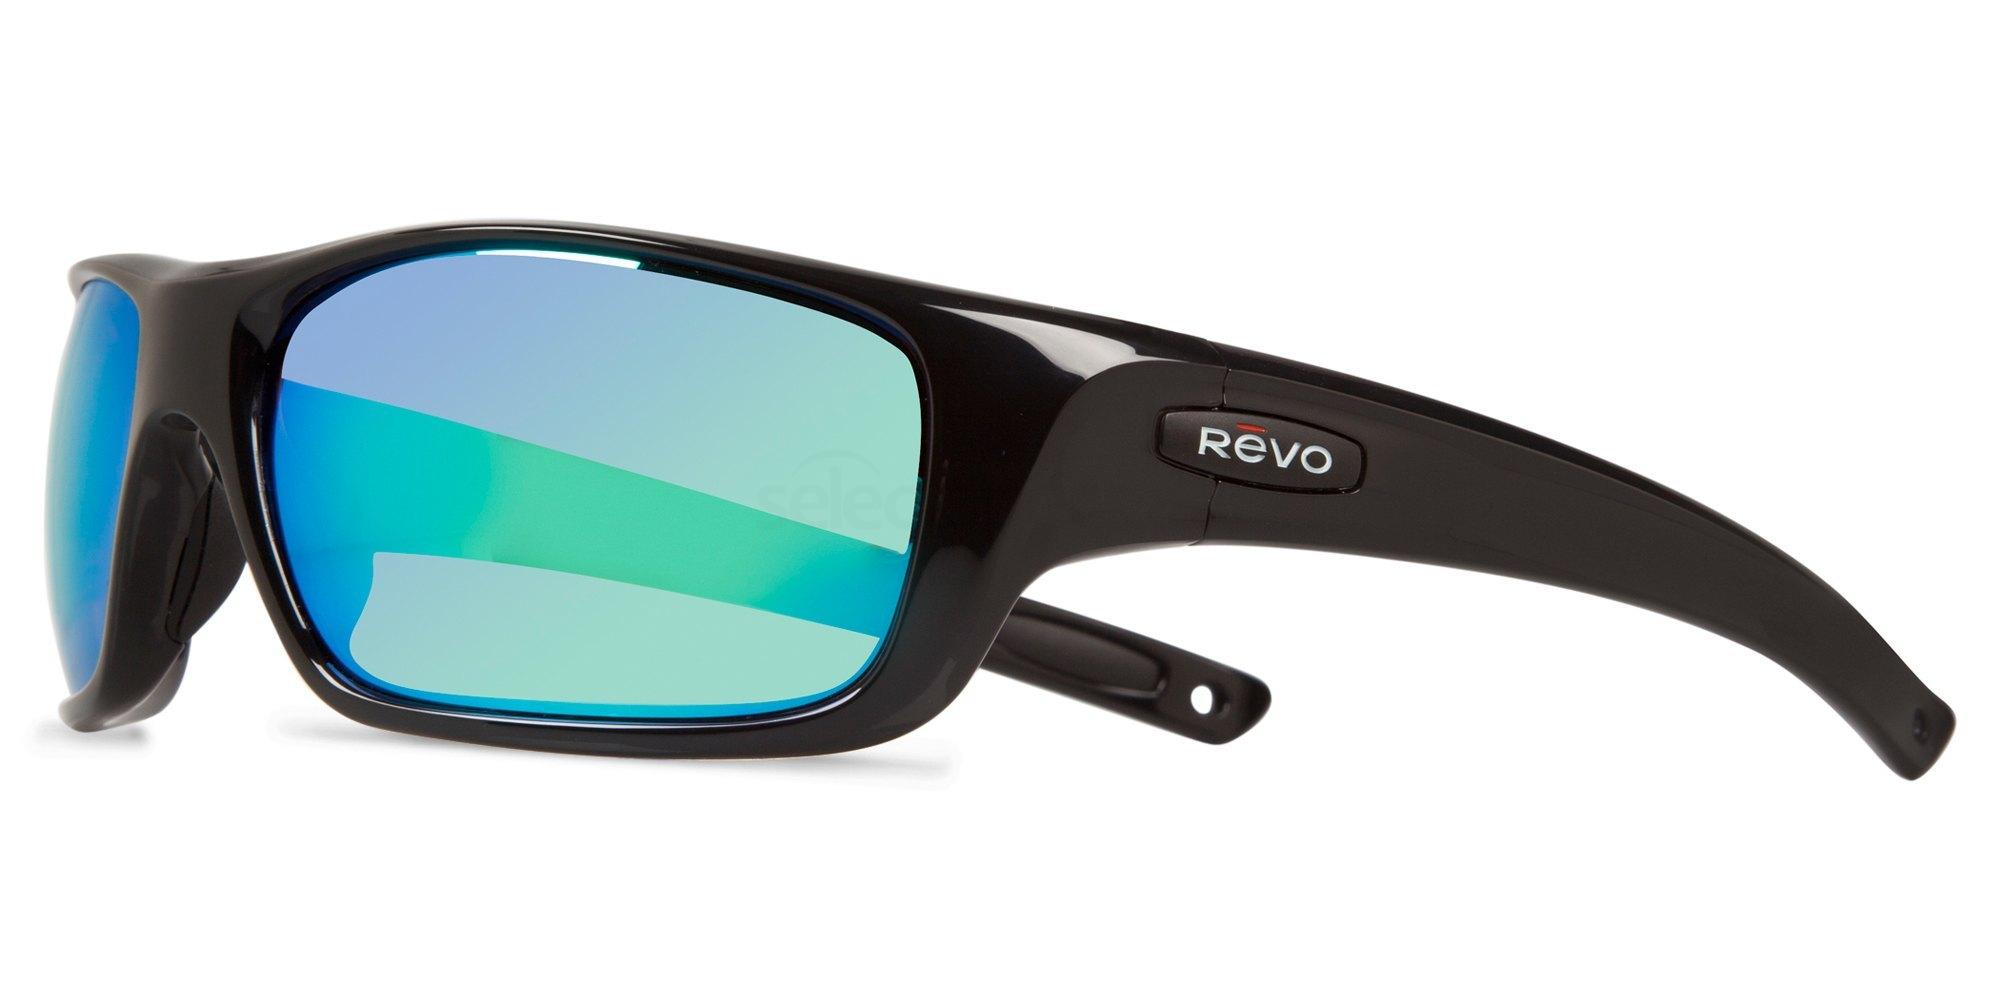 01GN Guide II - RE4073 Sunglasses, Revo